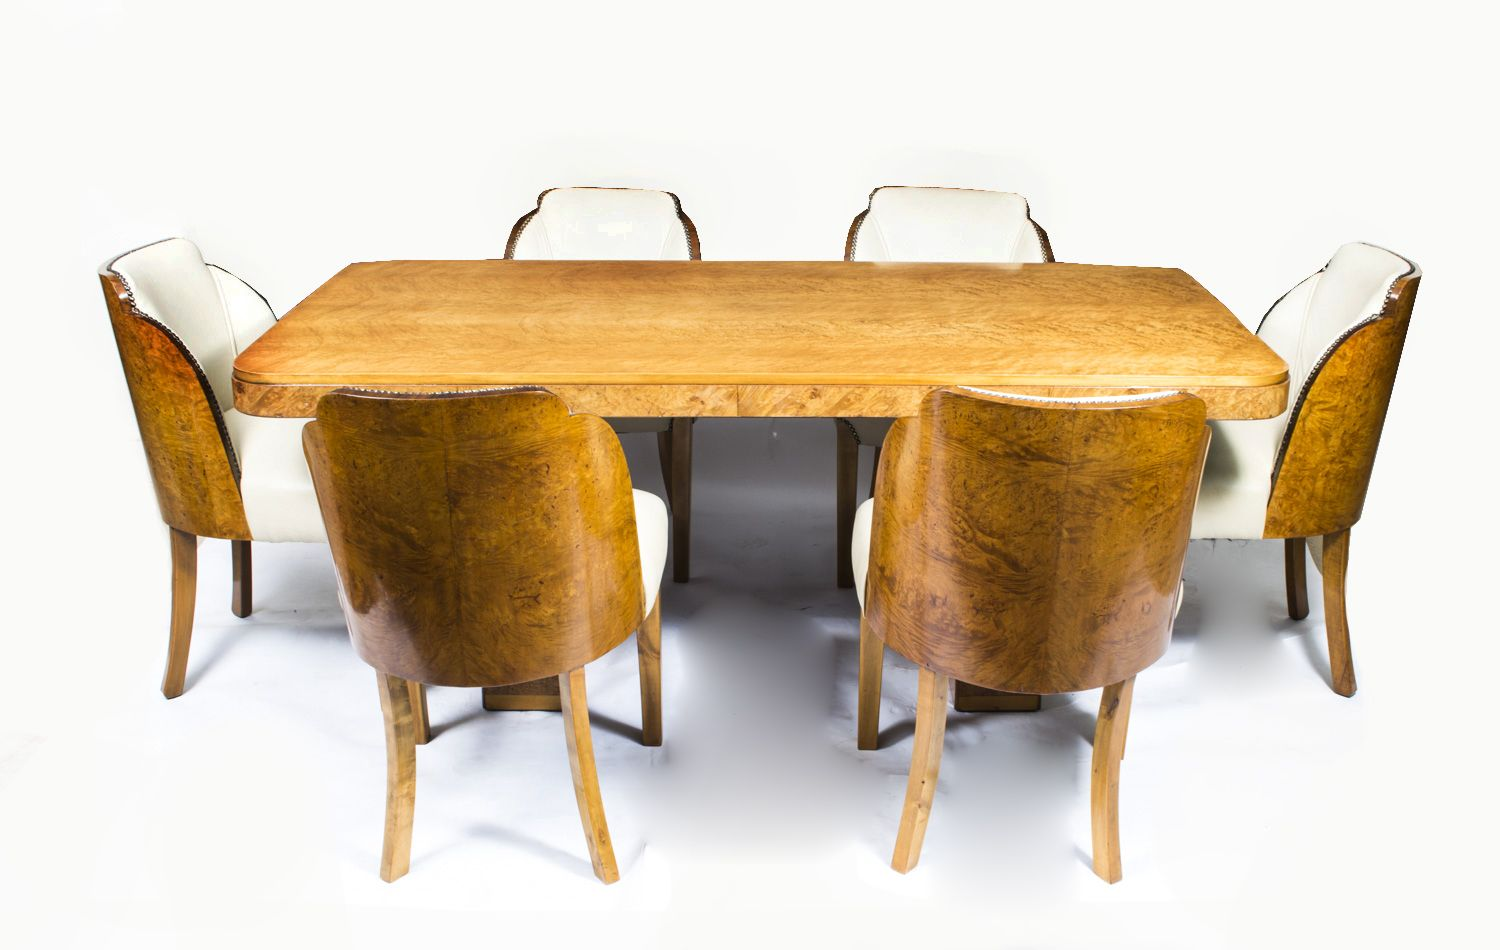 A beautiful antique Art Deco dining table with 6 cloudback chairs. - A Beautiful Antique Art Deco Dining Table With 6 Cloudback Chairs